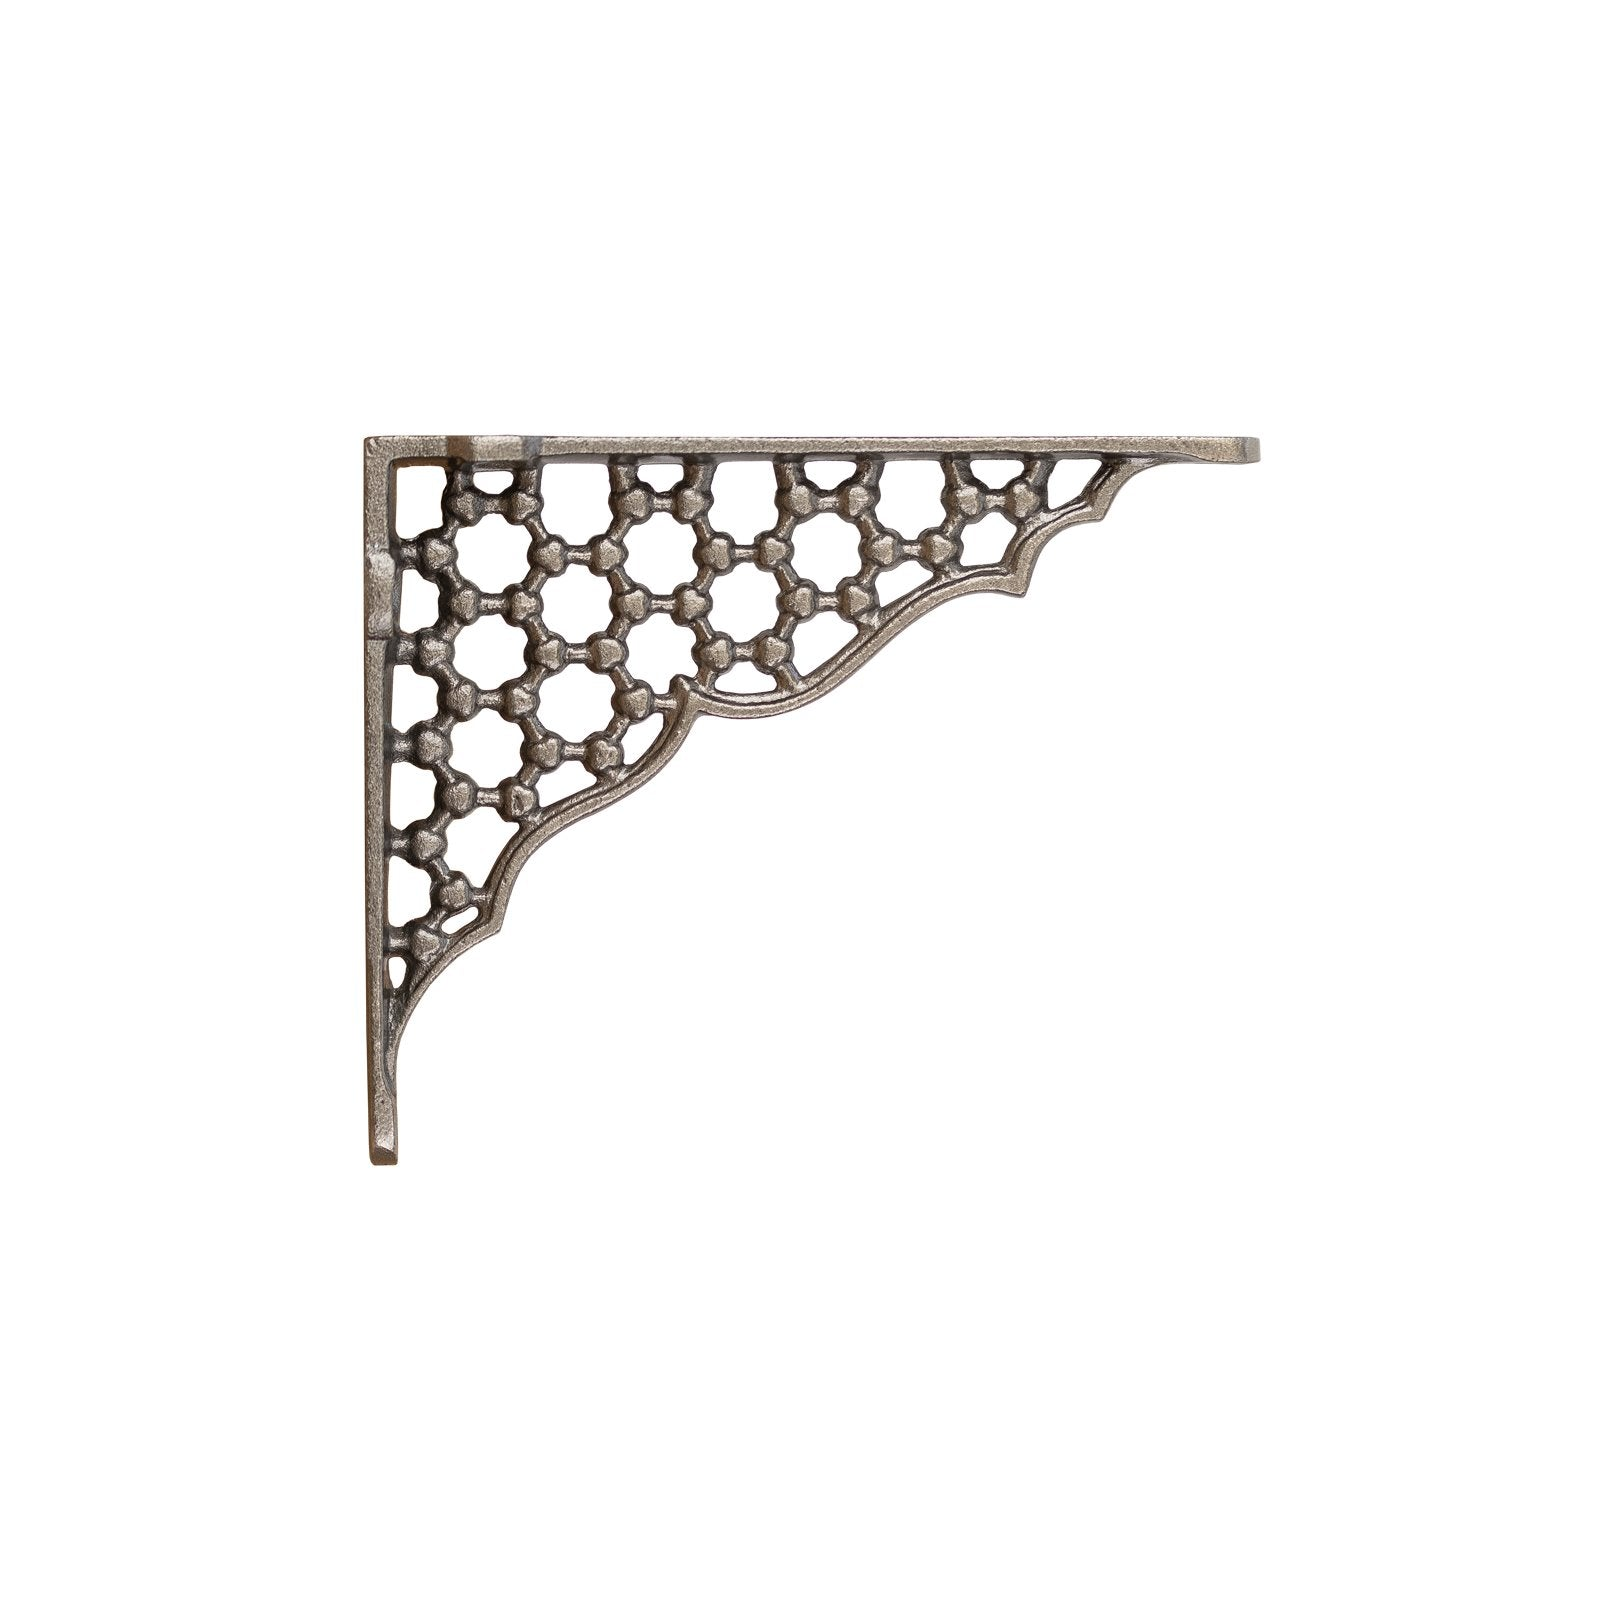 wrought iron brackets uk, wrought iron shelf brackets, black shelf brackets, alcove shelf brackets, kitchen shelf brackets, industrial shelf brackets, shelf brackets uk, wrought iron brackets uk, ornate shelf brackets